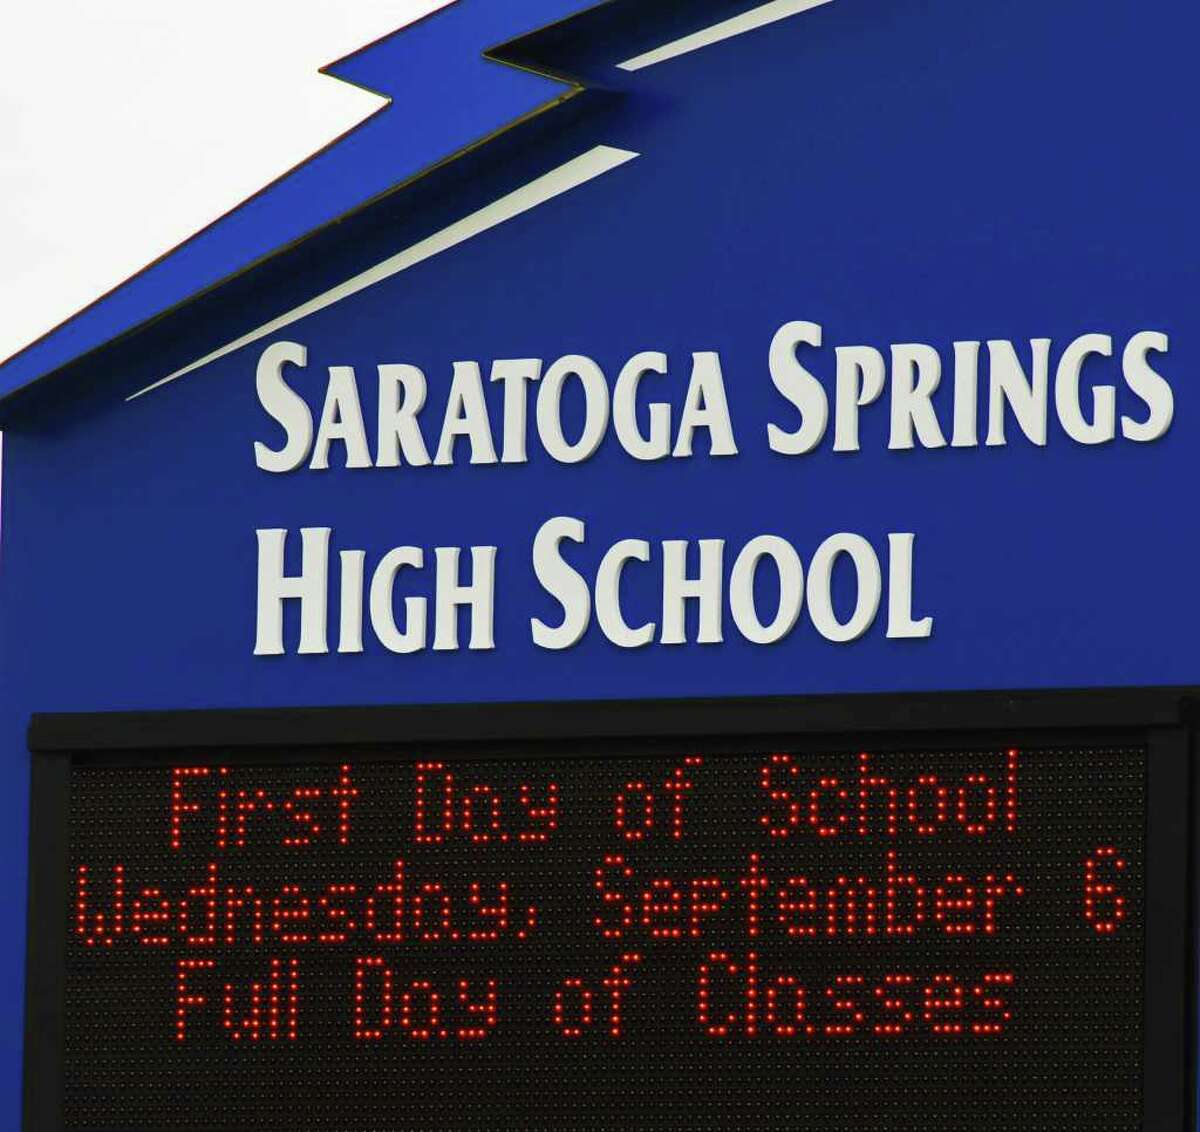 Saratoga Springs High School's sign. (John Carl D'Annibale / Times Union Archive)